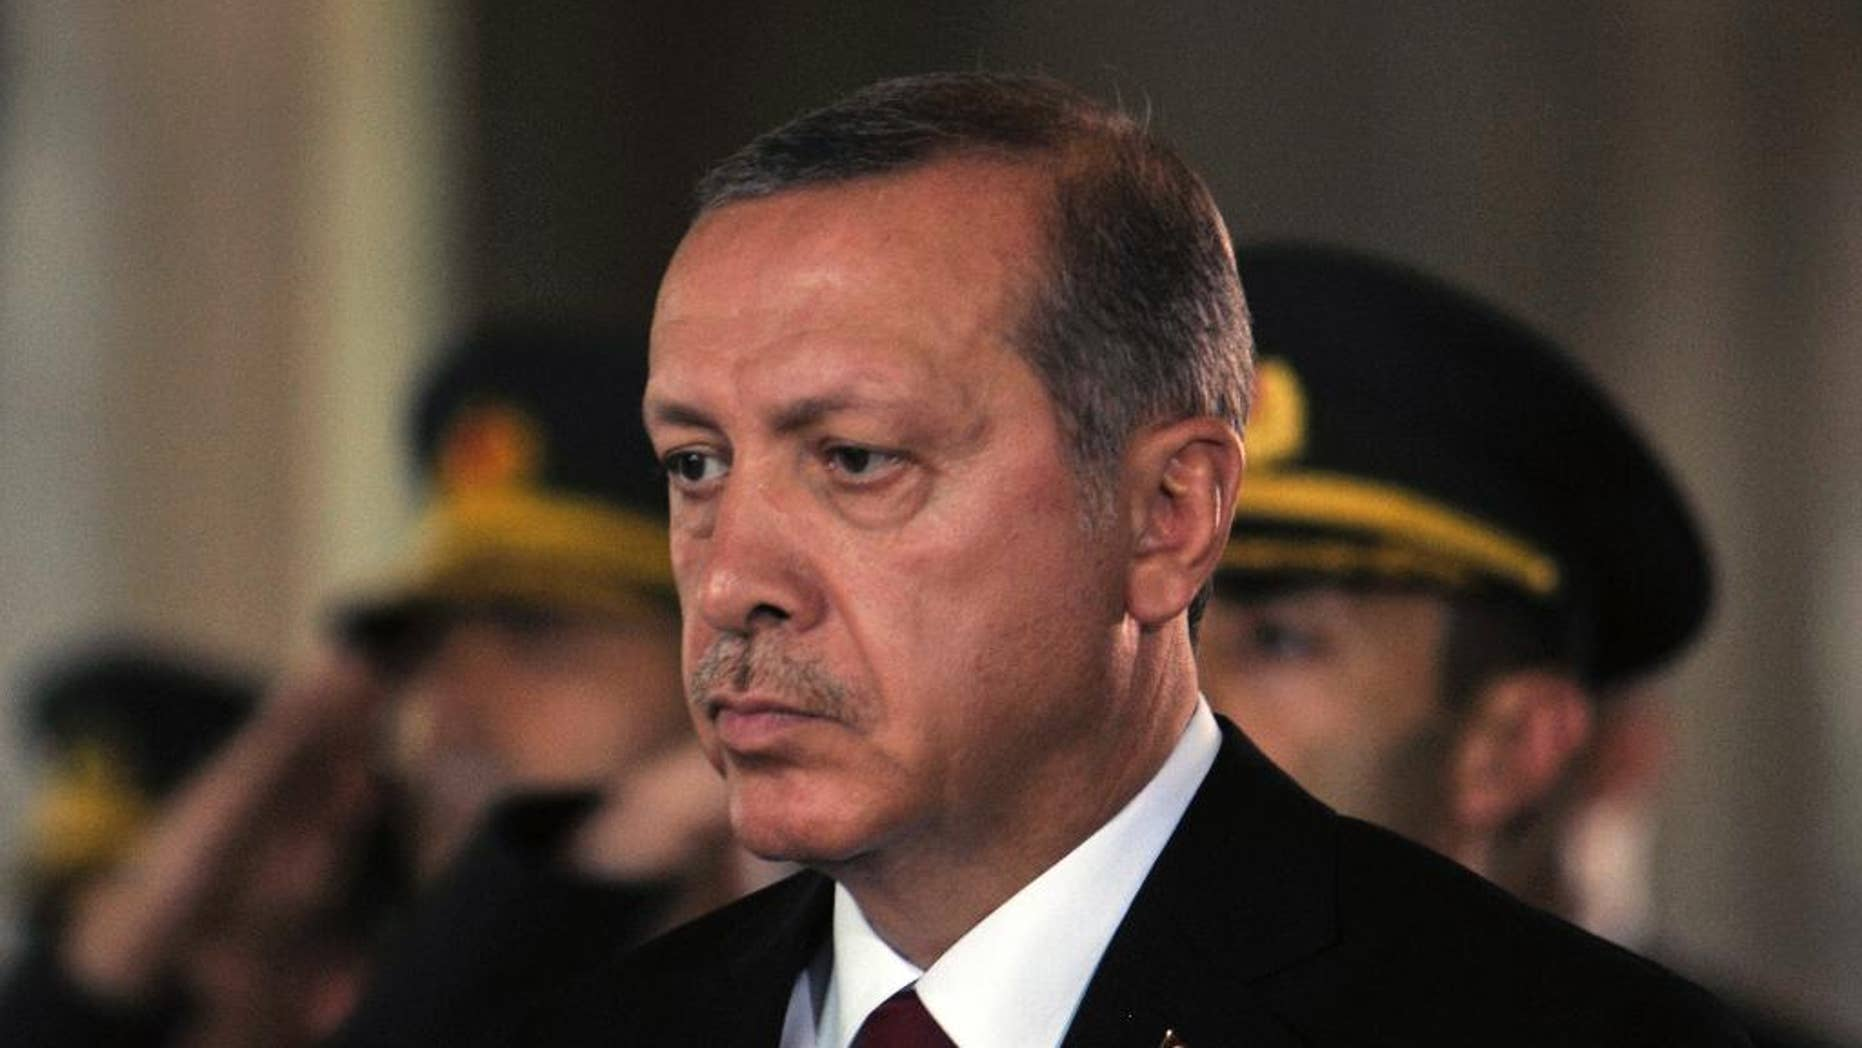 Turkish President Recep Tayyip Erdogan may welcome Muslim Brotherhood leaders, after they were kicked out of Qatar. (AP Photo)